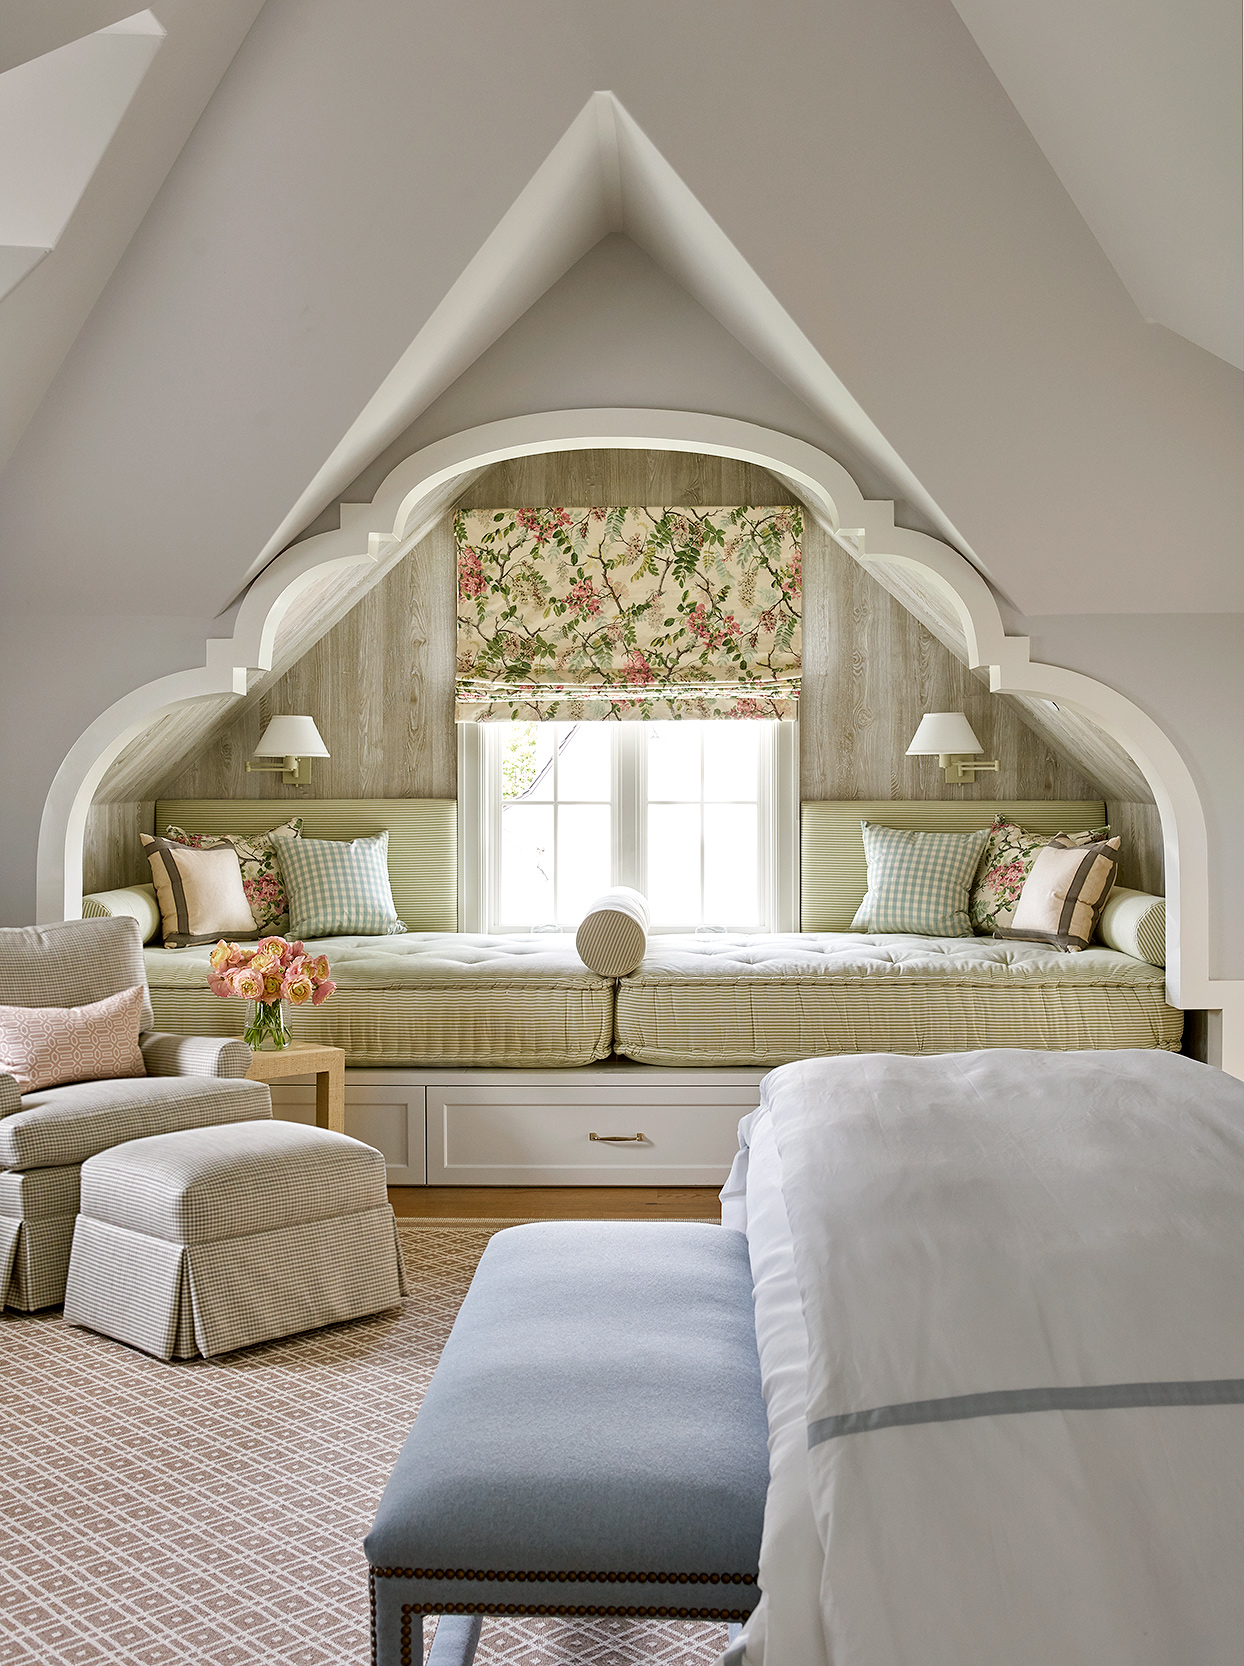 bed nook window guest suite arched ceiling